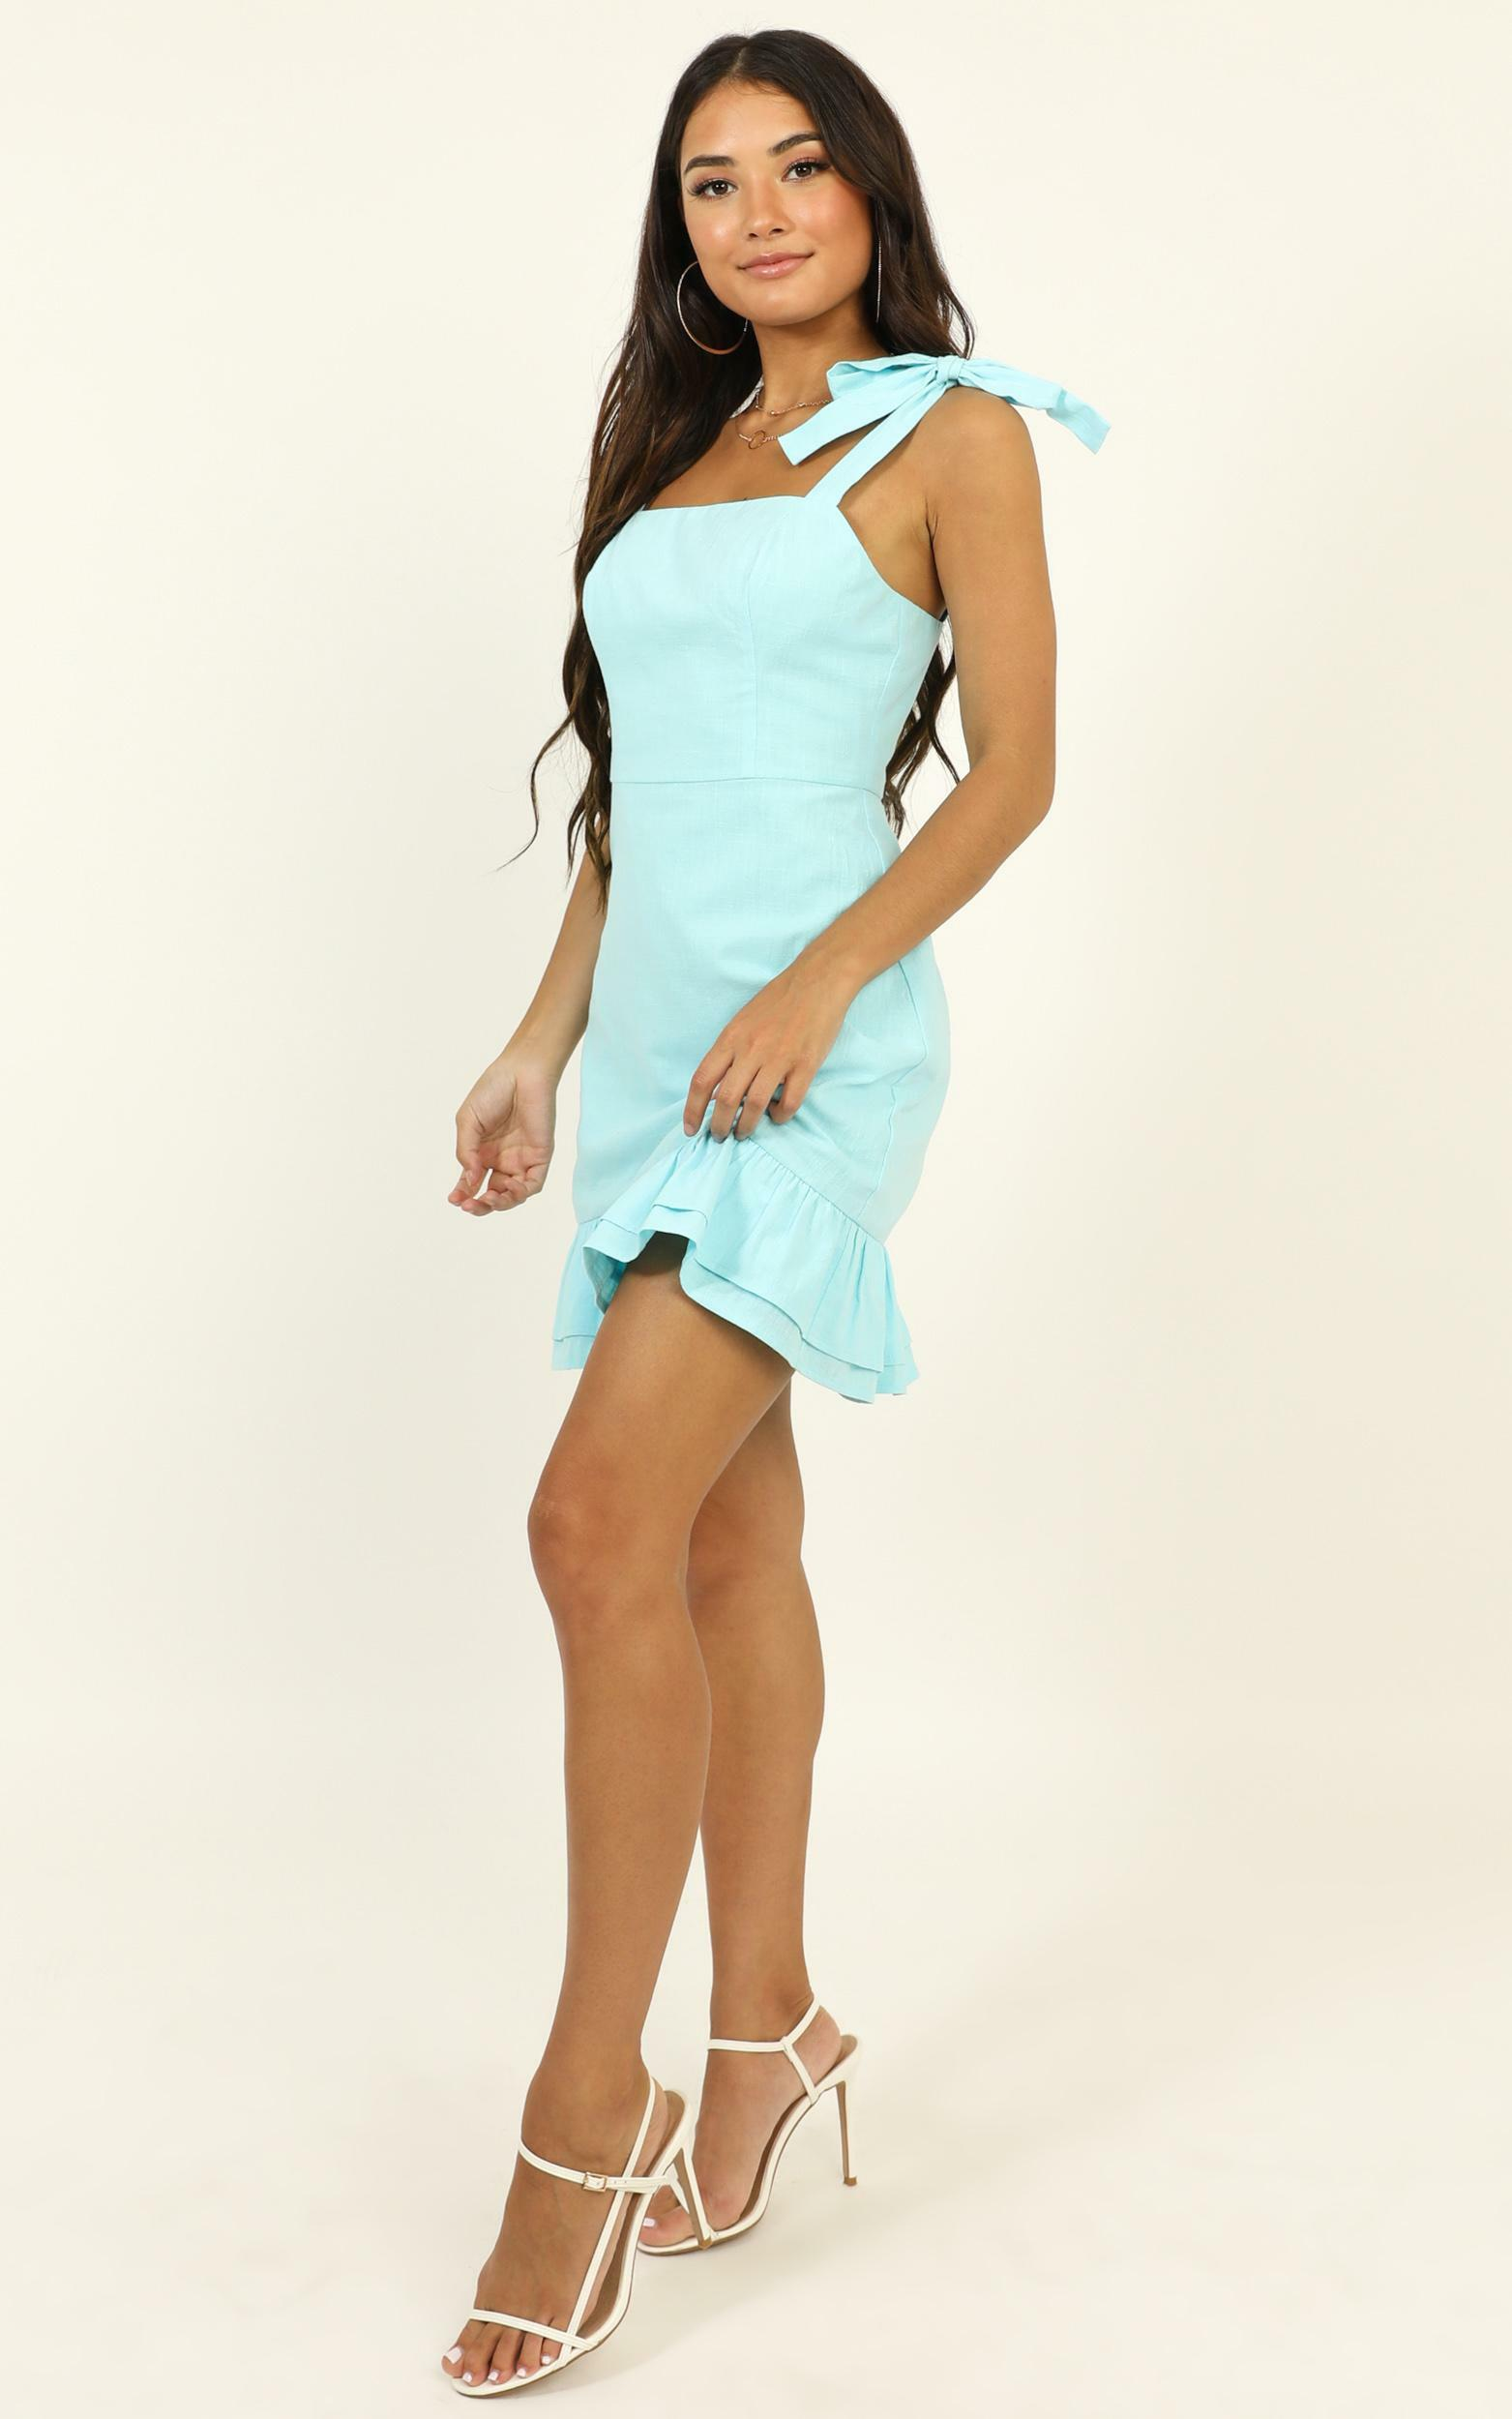 Coastal Getaway Dress in Blue - 20, BLU2, hi-res image number null